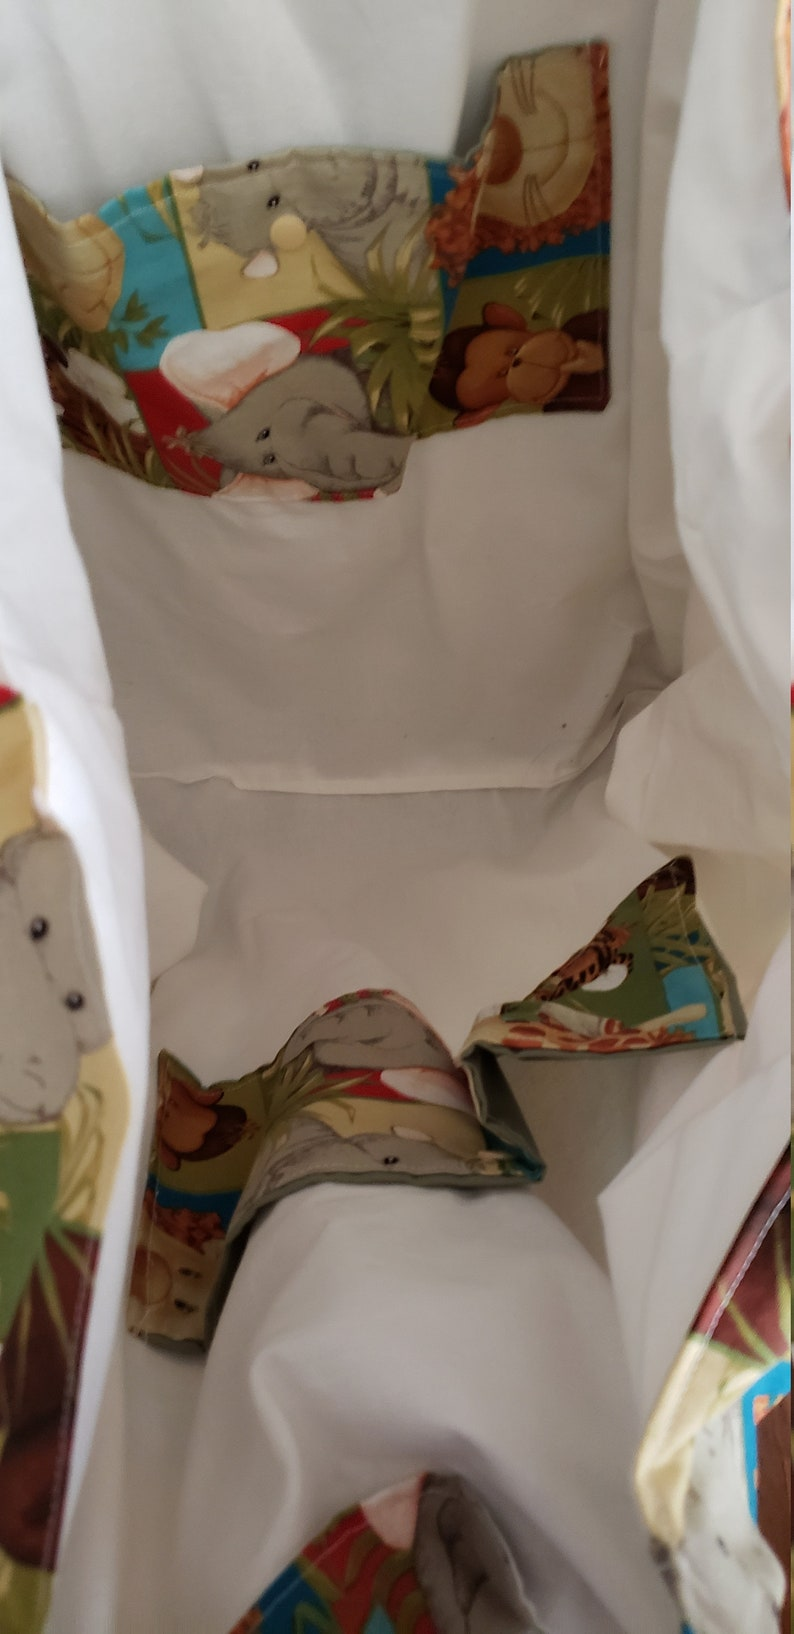 Reborn Doll Bag Fold down for bed 27x20